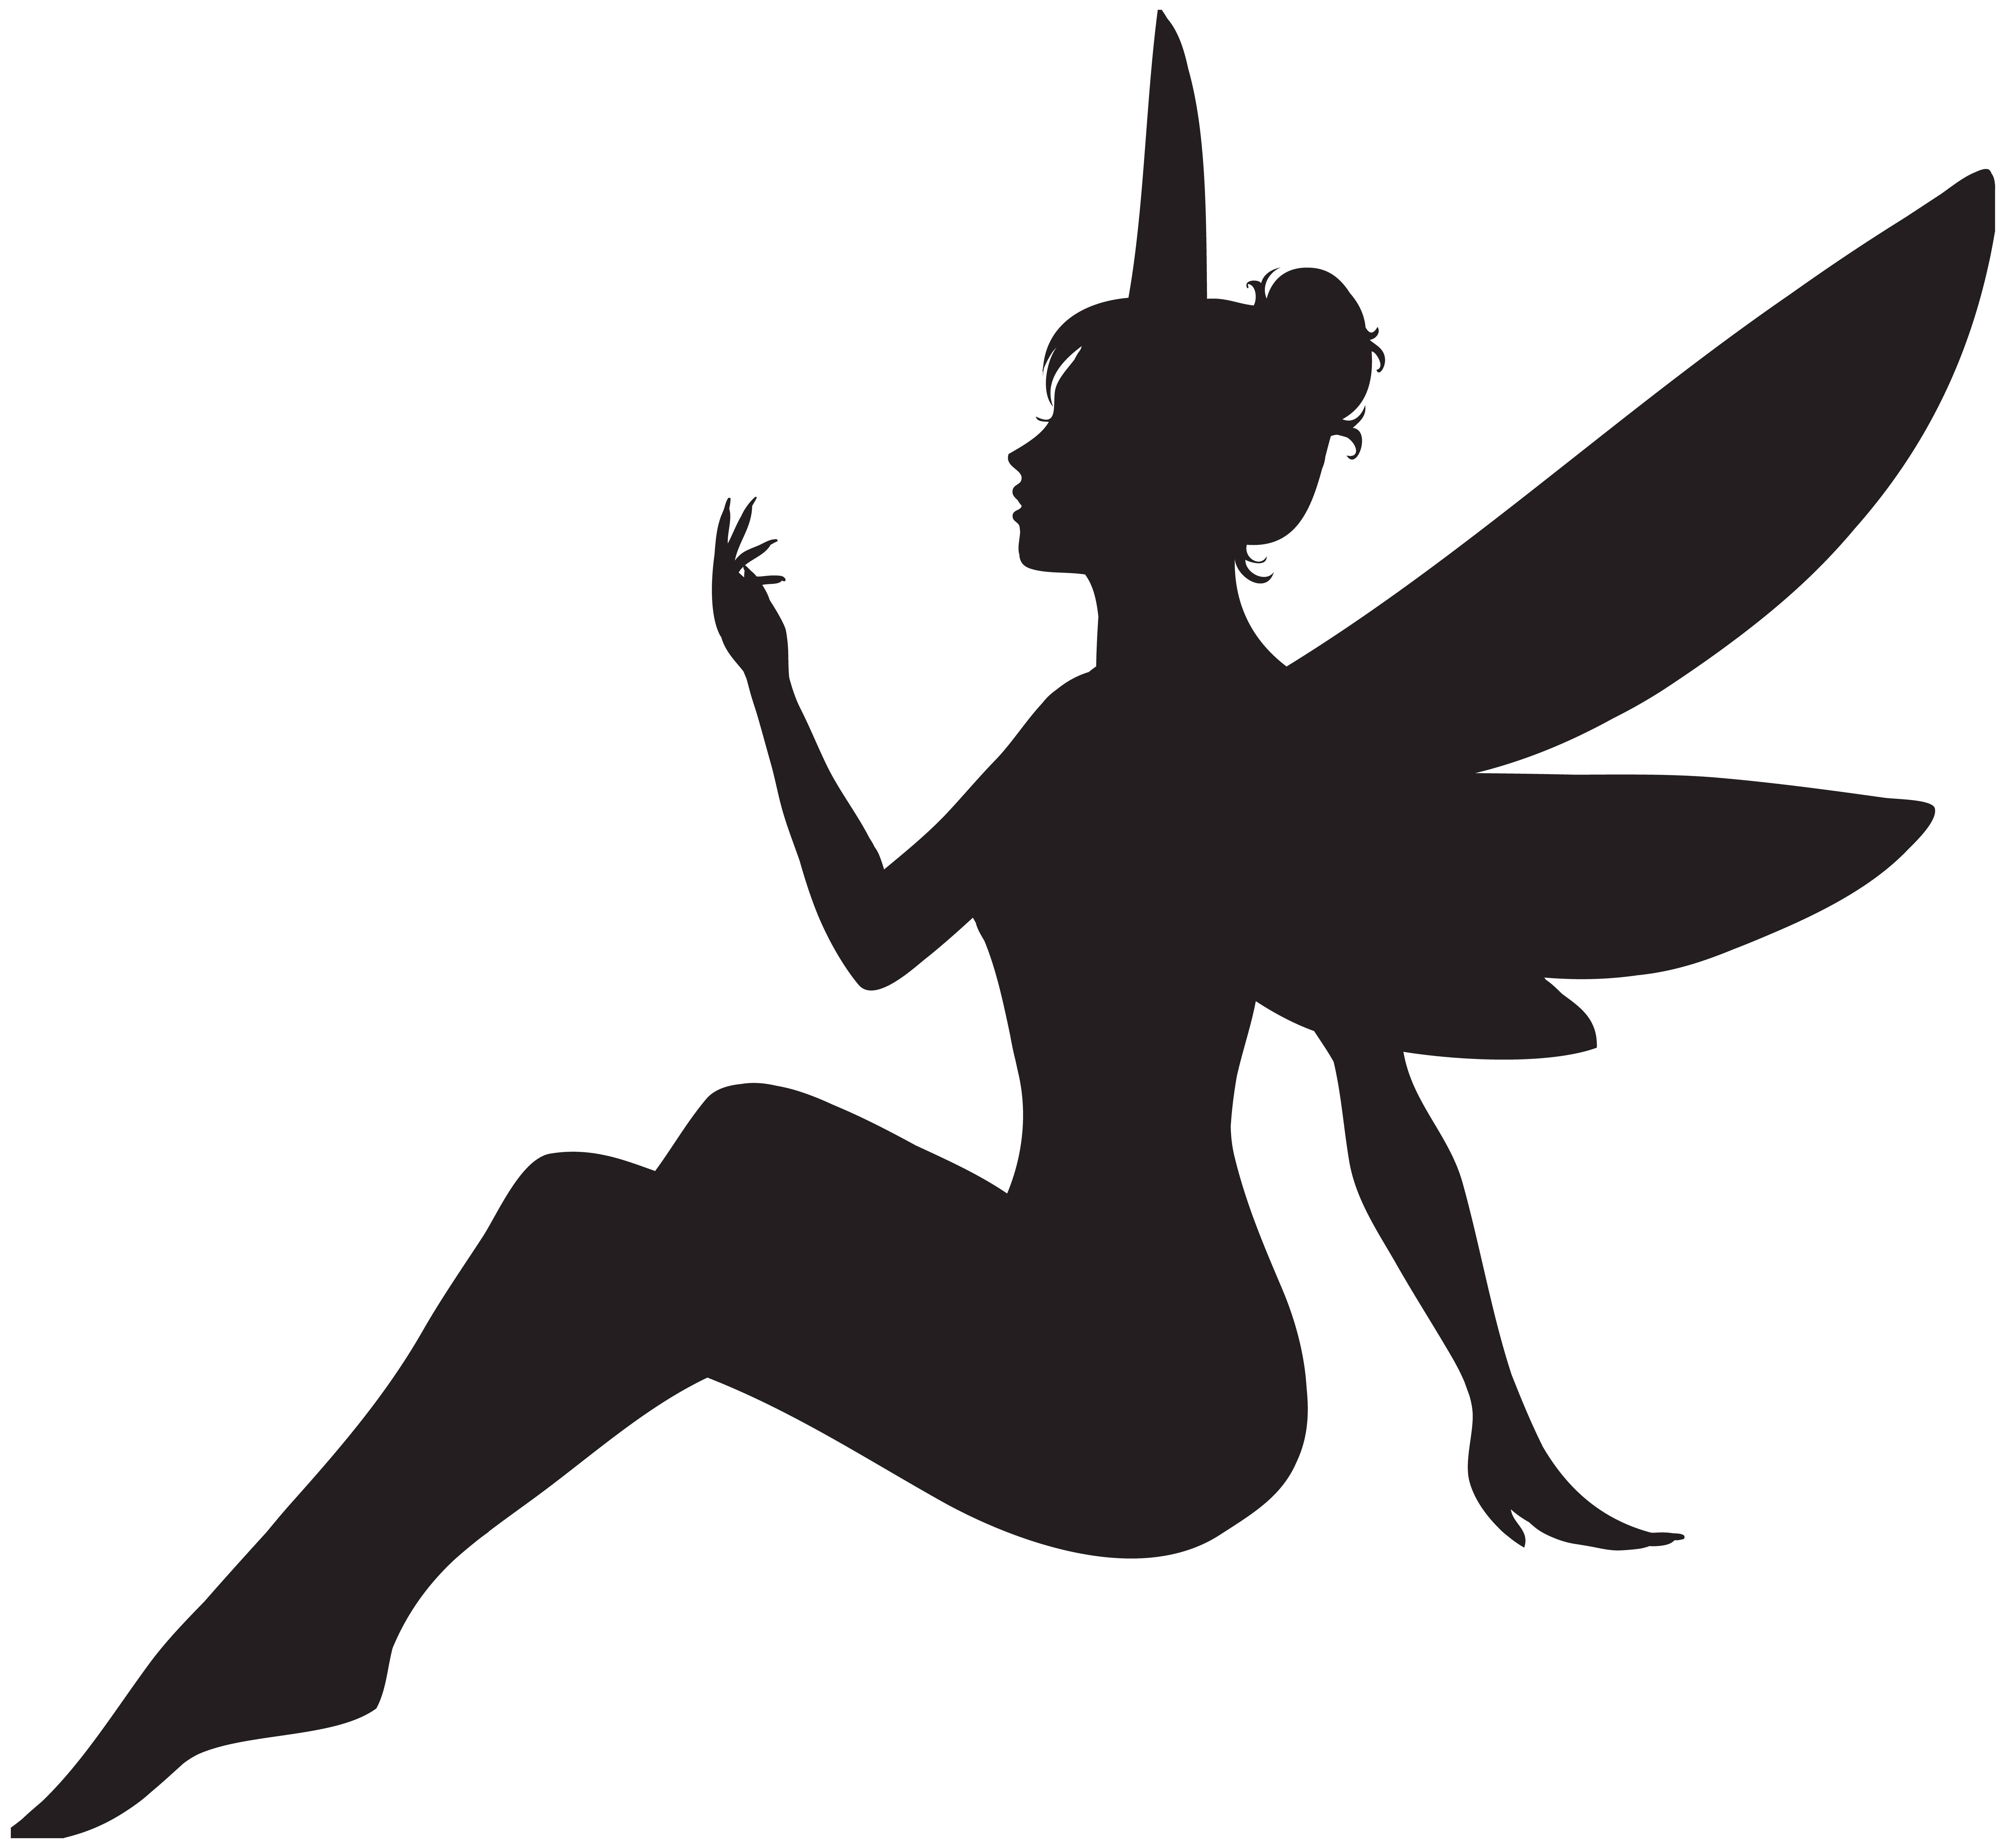 8000x7371 Fairy Silhouette Png Clip Art Imageu200b Gallery Yopriceville